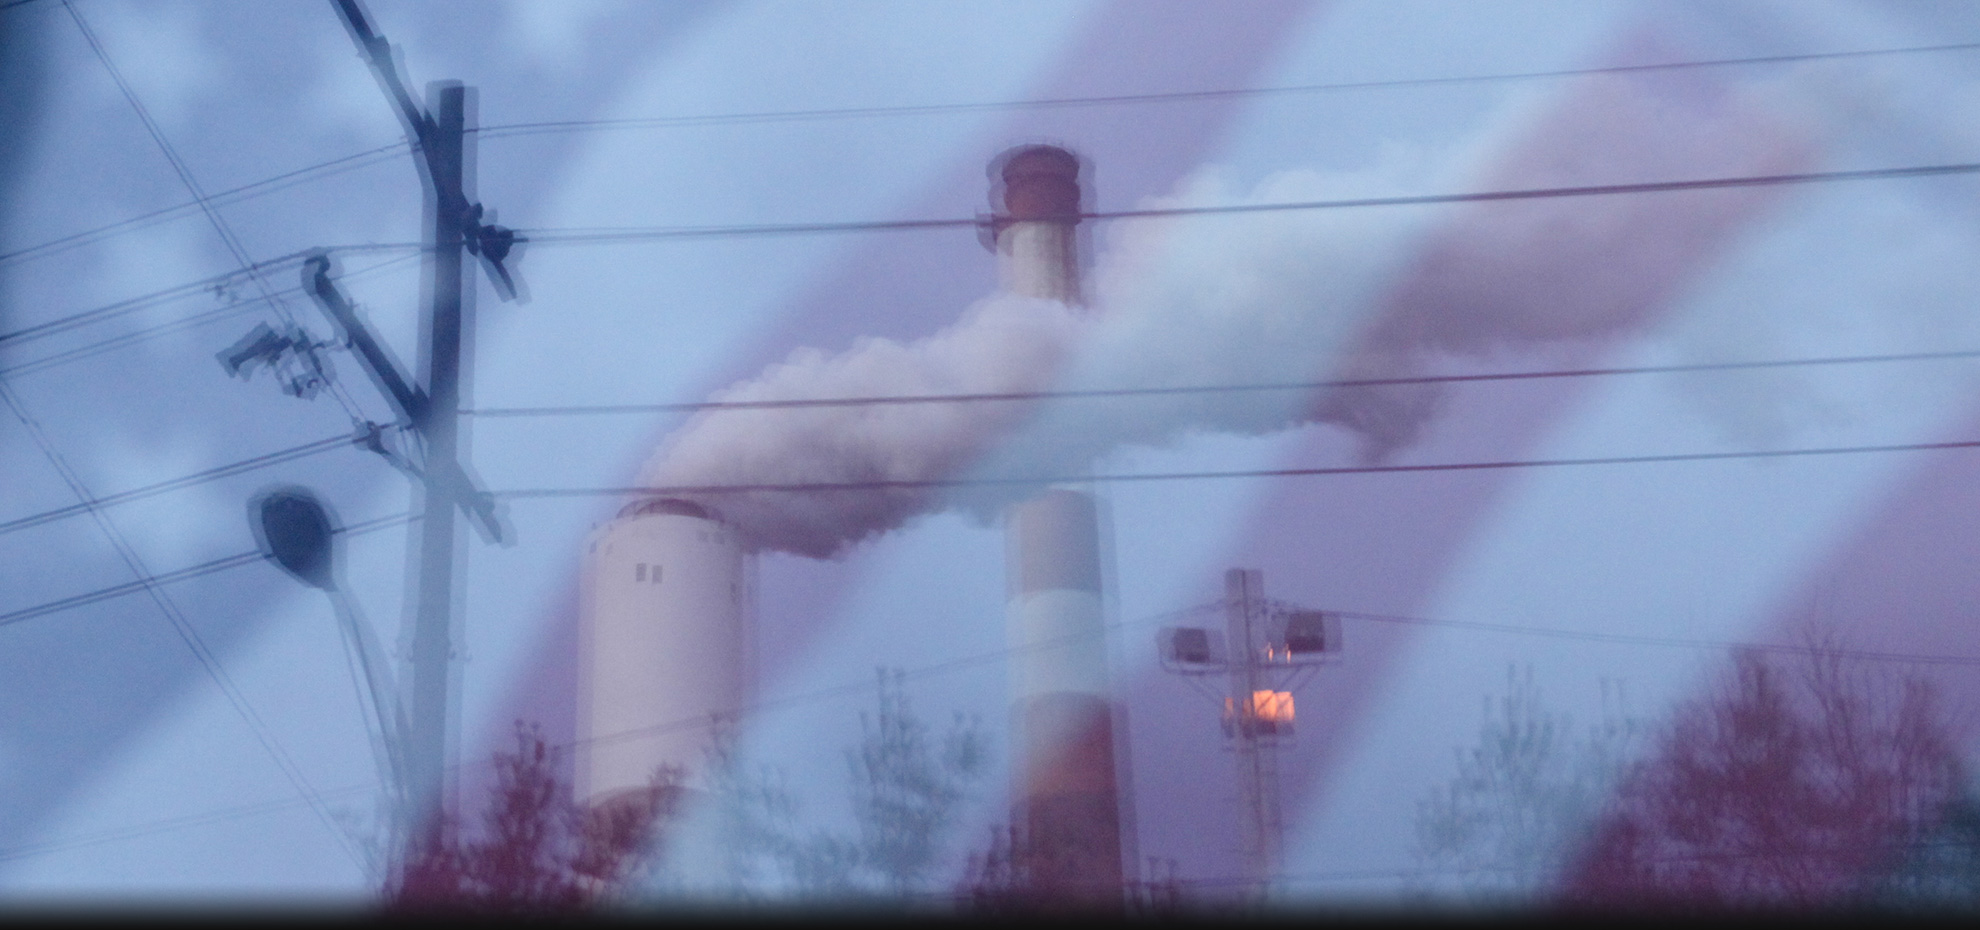 The Cheswick coal-fired power plant in Pennyslvania.